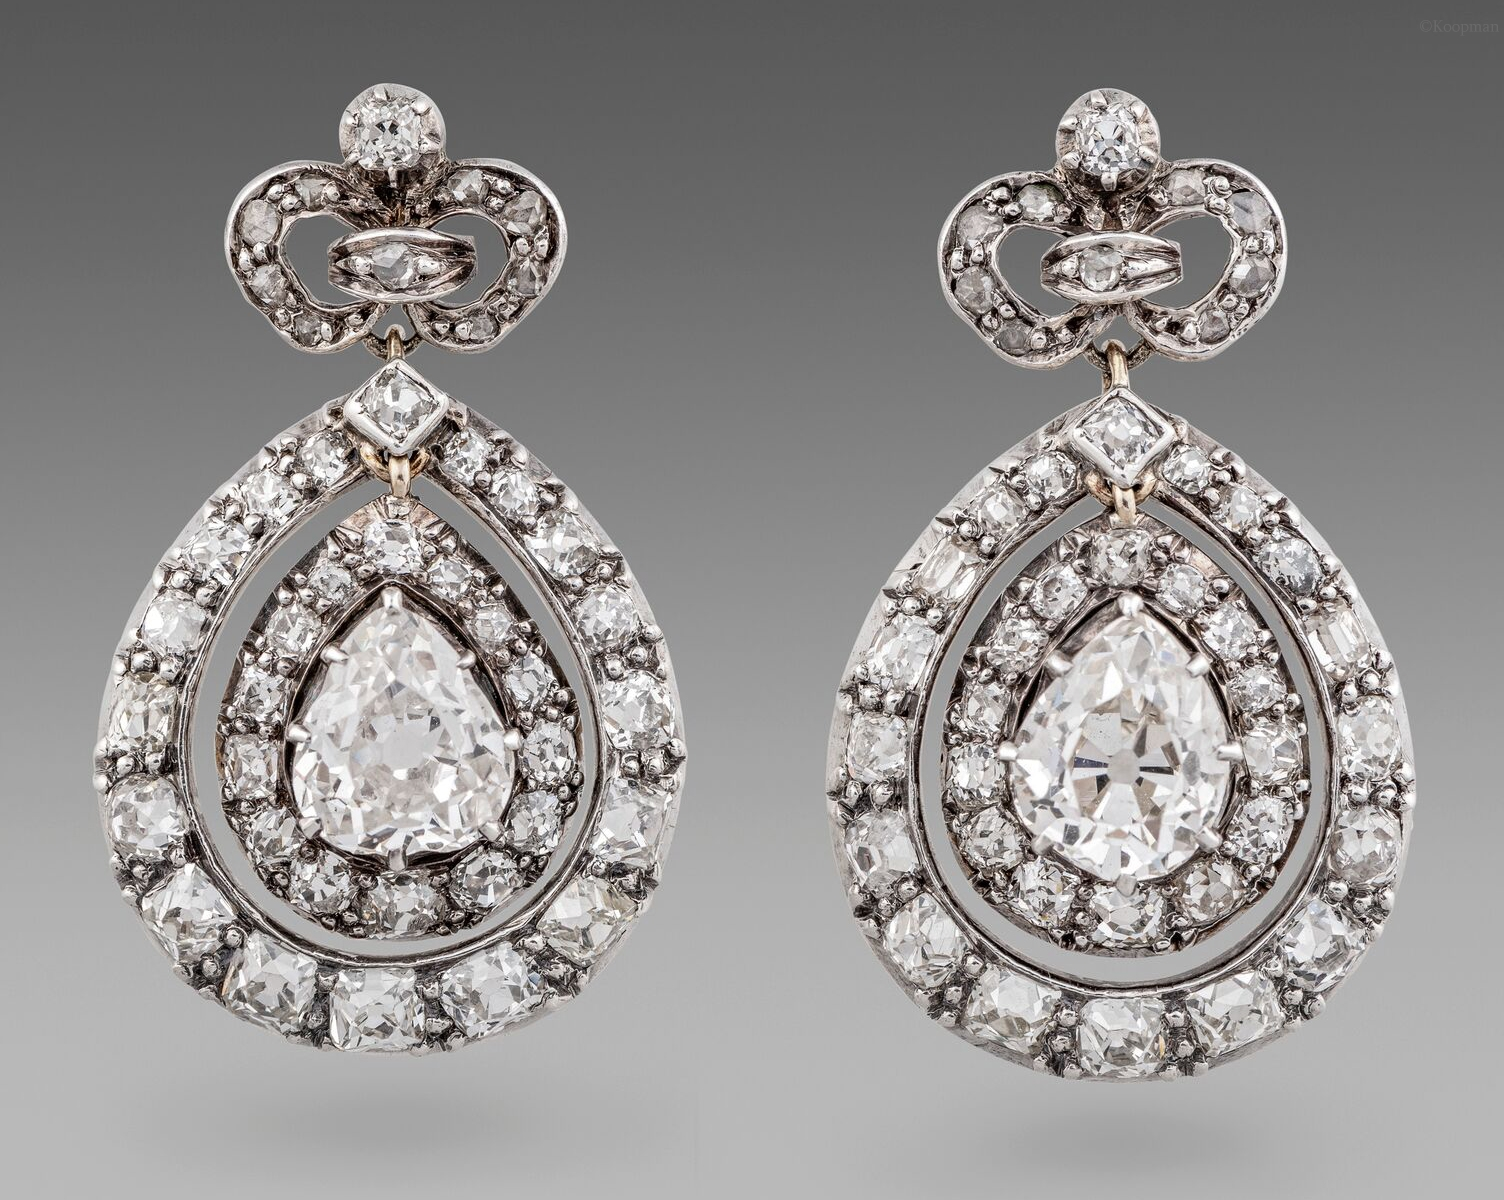 A Pair of 19thCentury French Diamond Set Pendant Earrings.